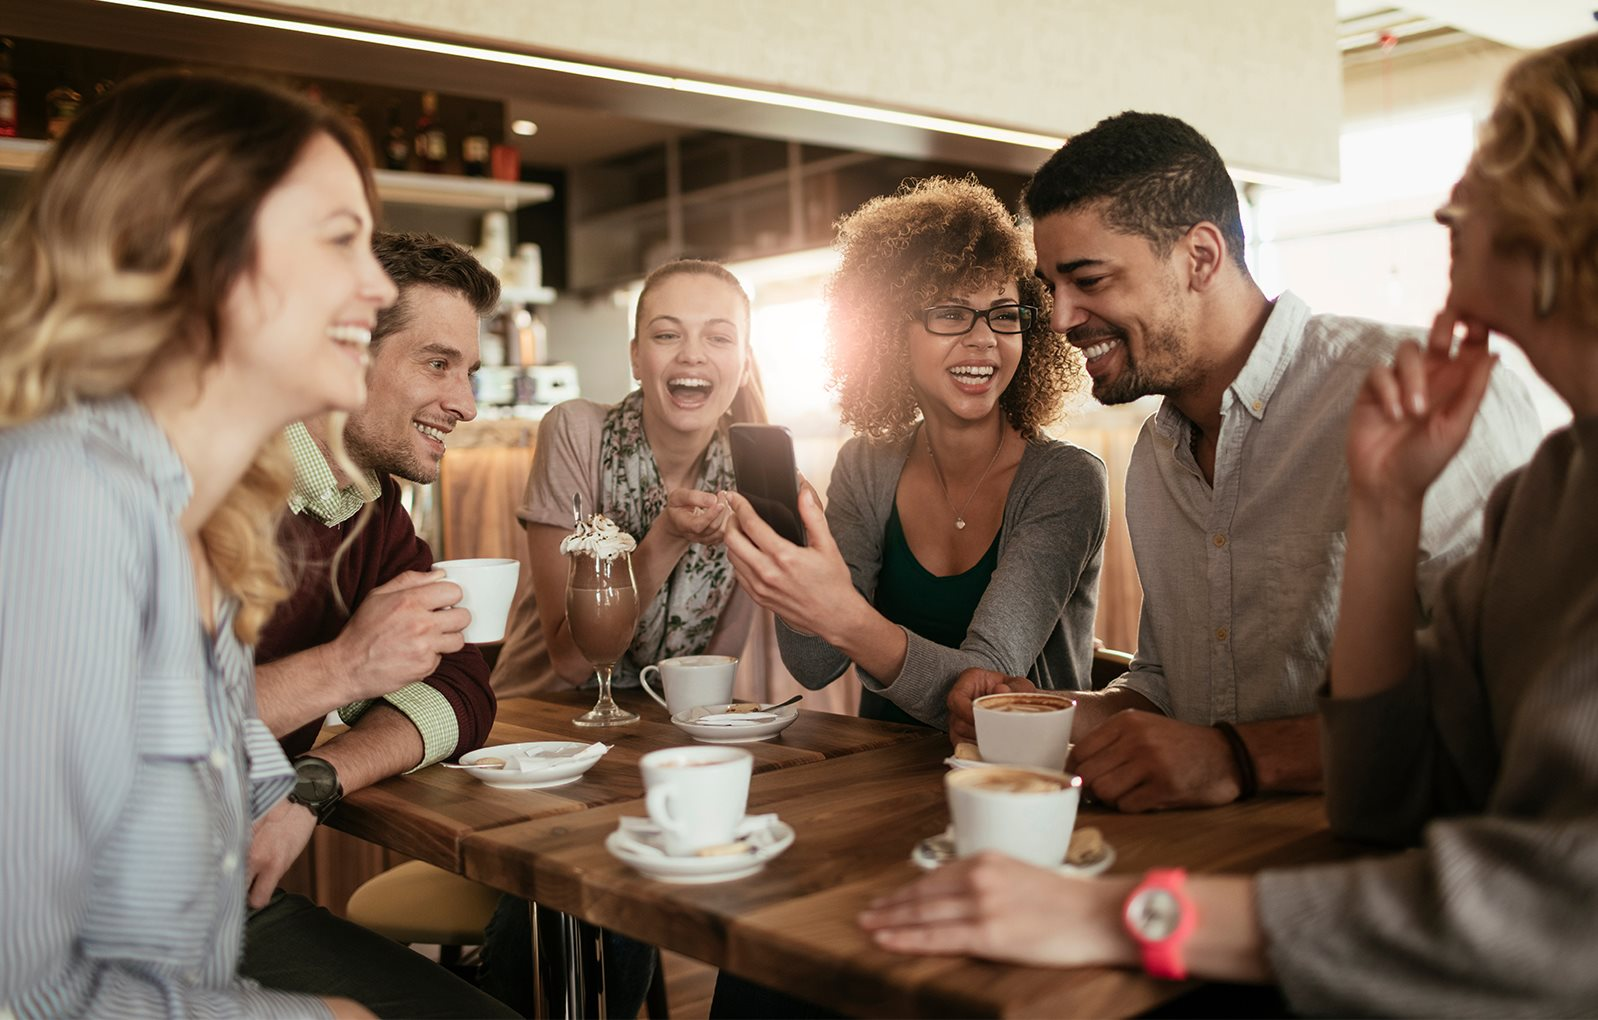 Group of people conversing over coffee